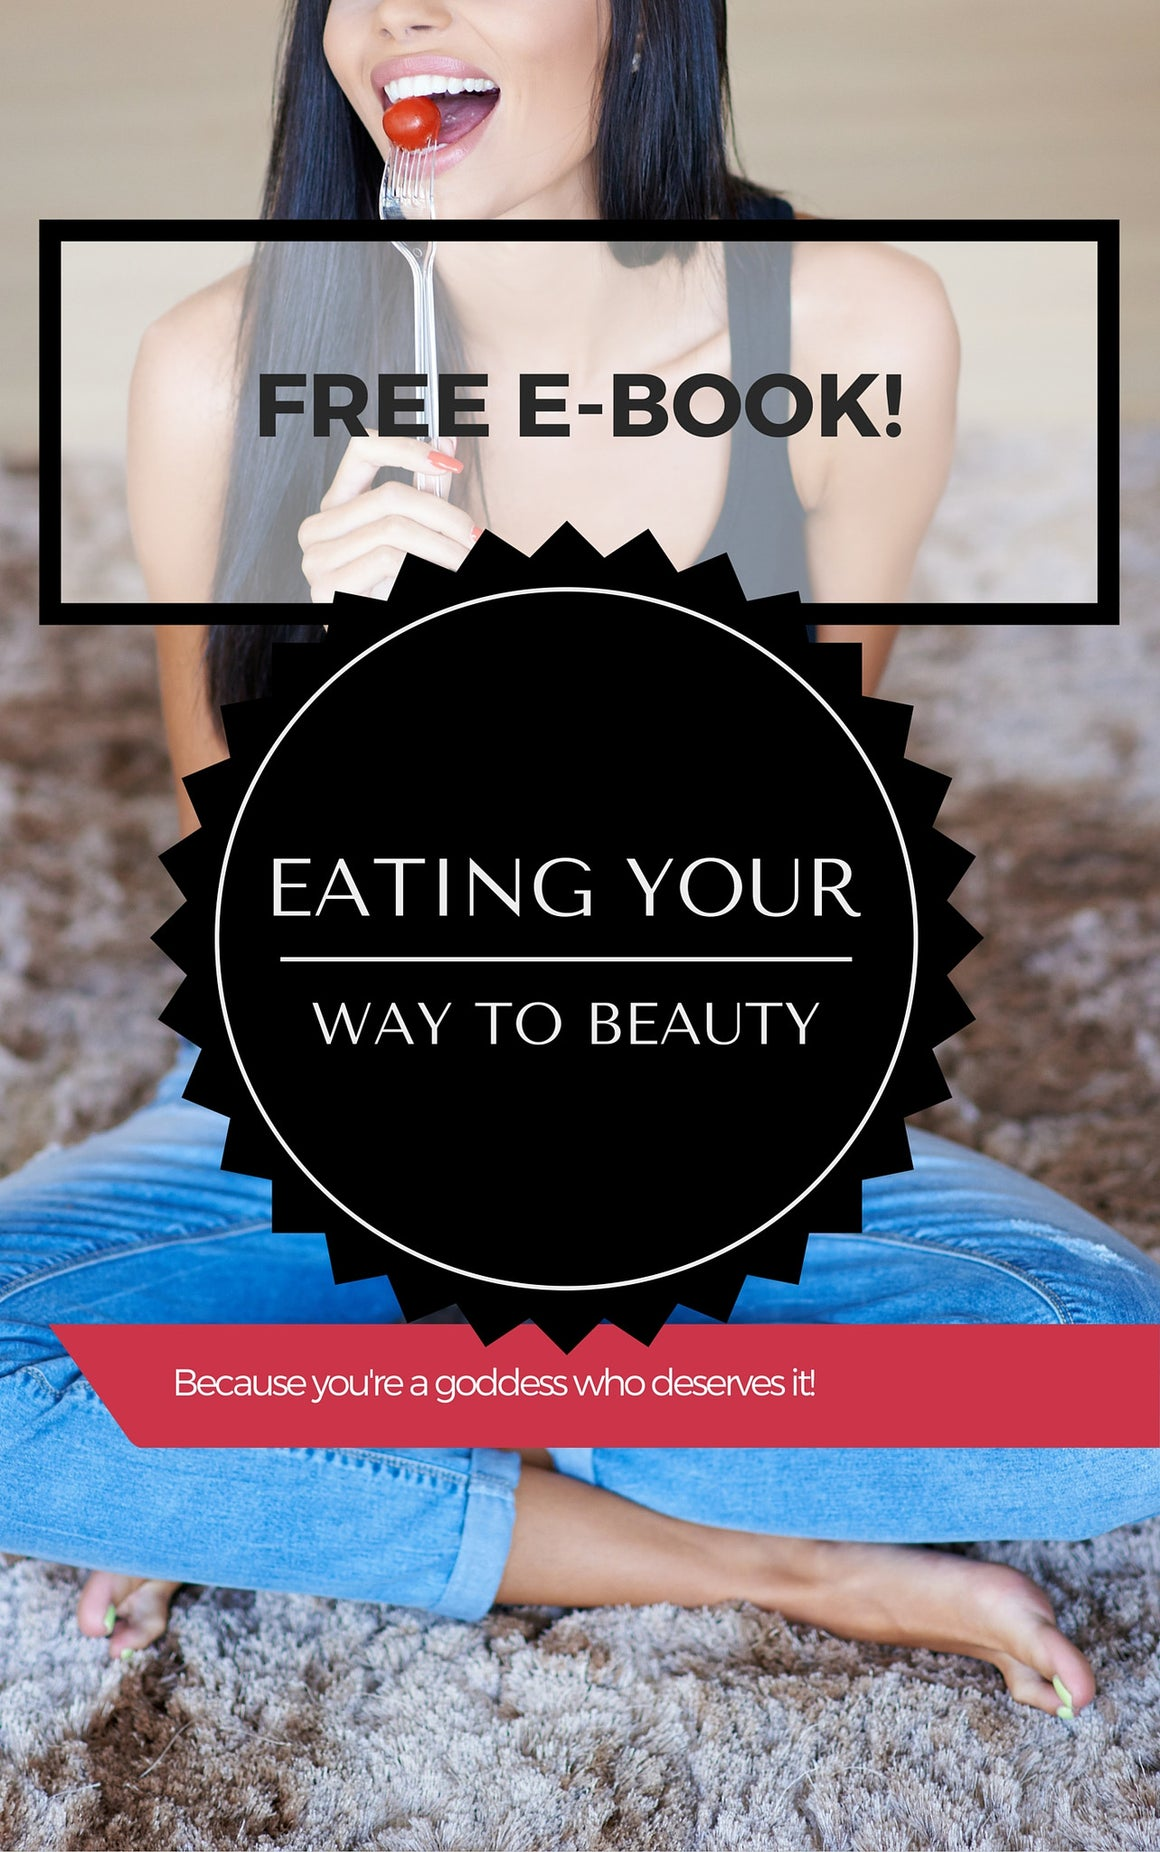 Eat Your Way To Beauty - Free E-Book download. - hellobrows